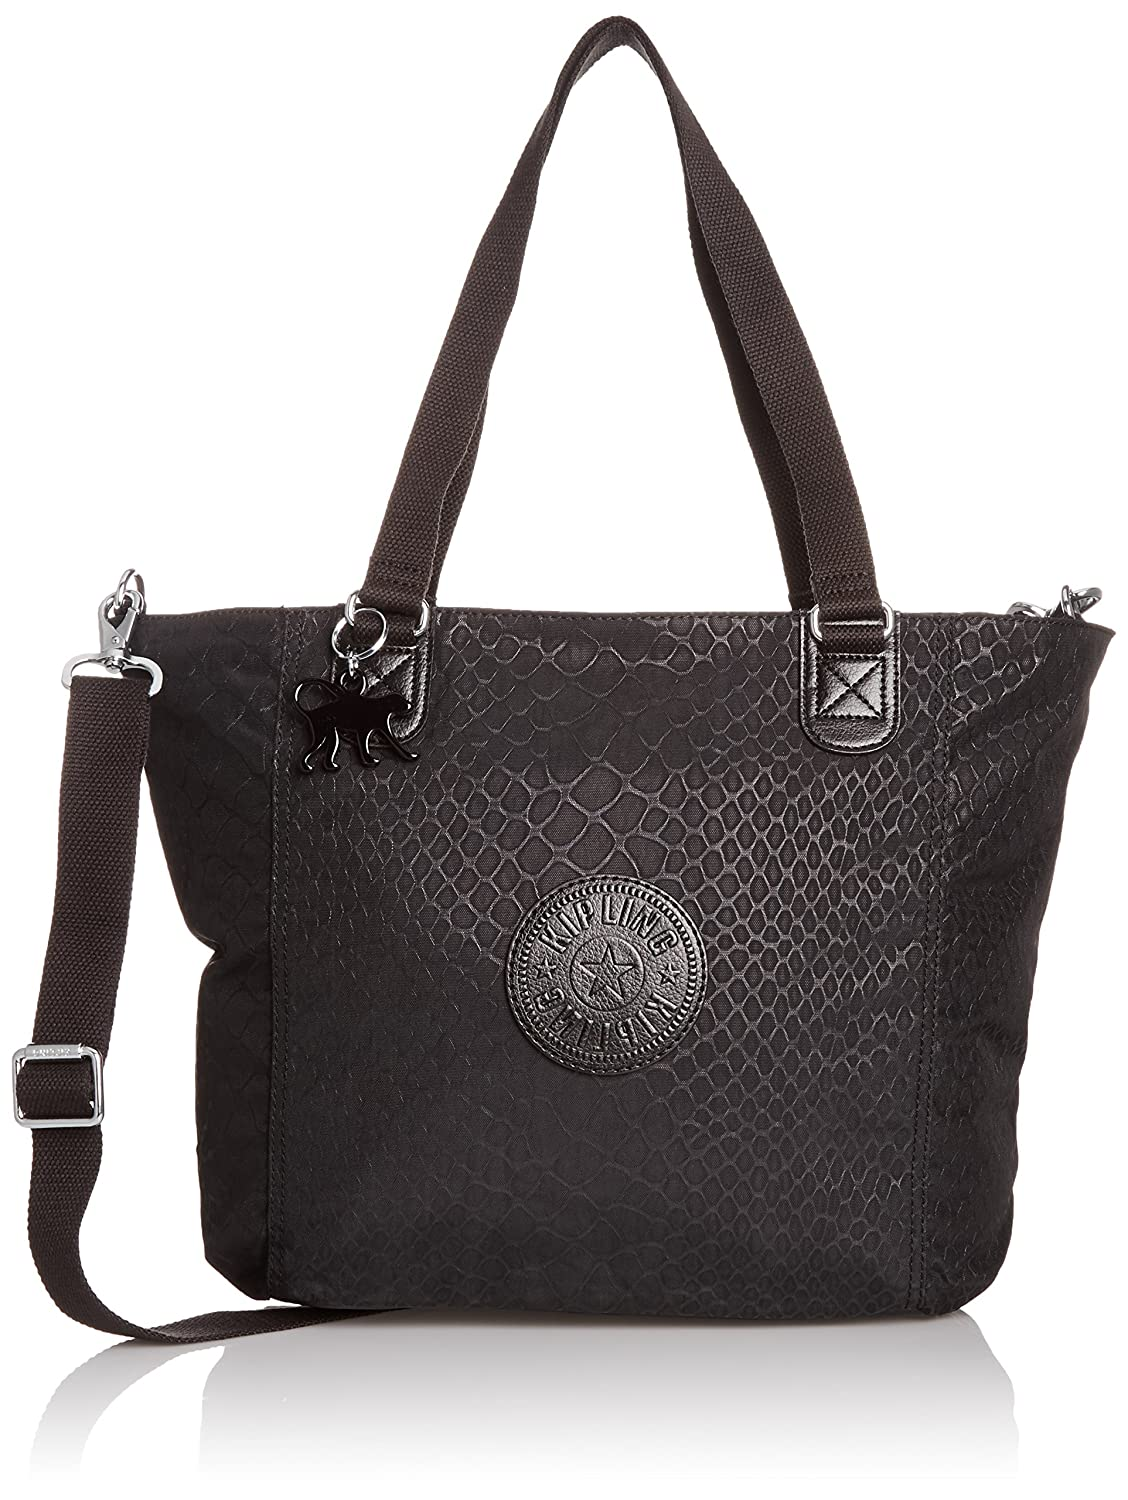 Kipling Shopper Combo Large Shoulder Bag With Removable Strap 12